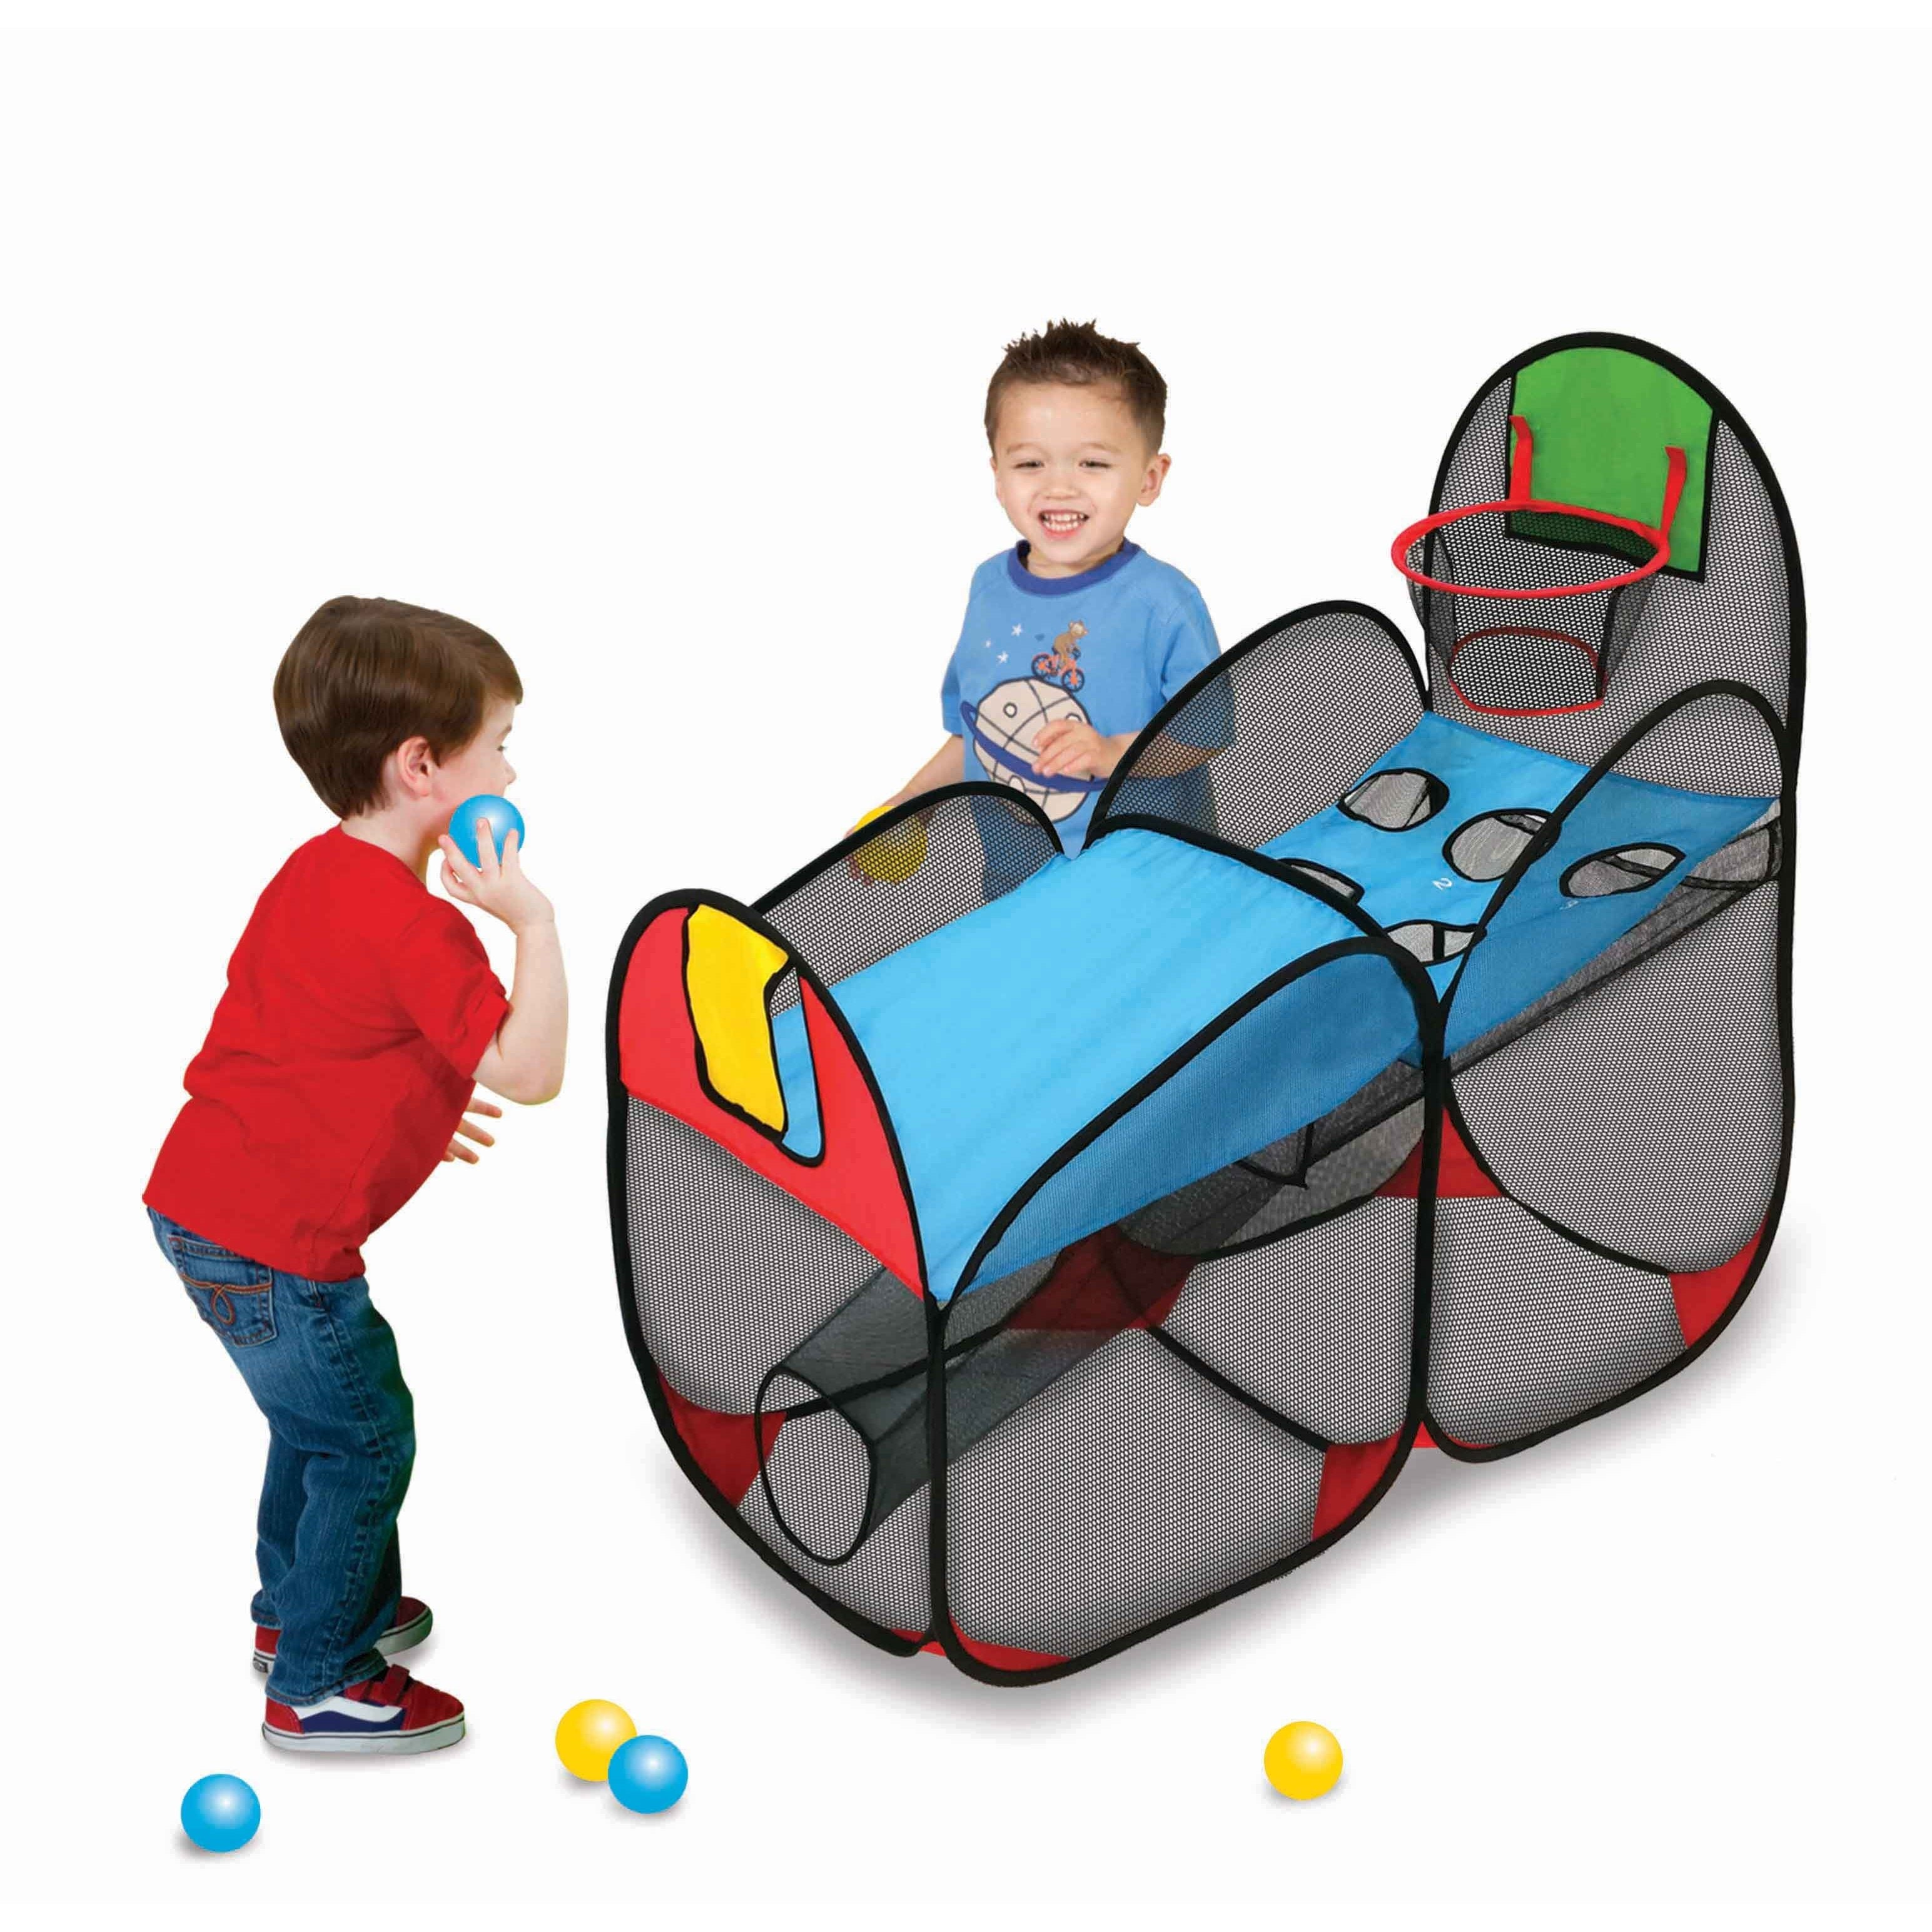 Playhut Game Center Play Tent